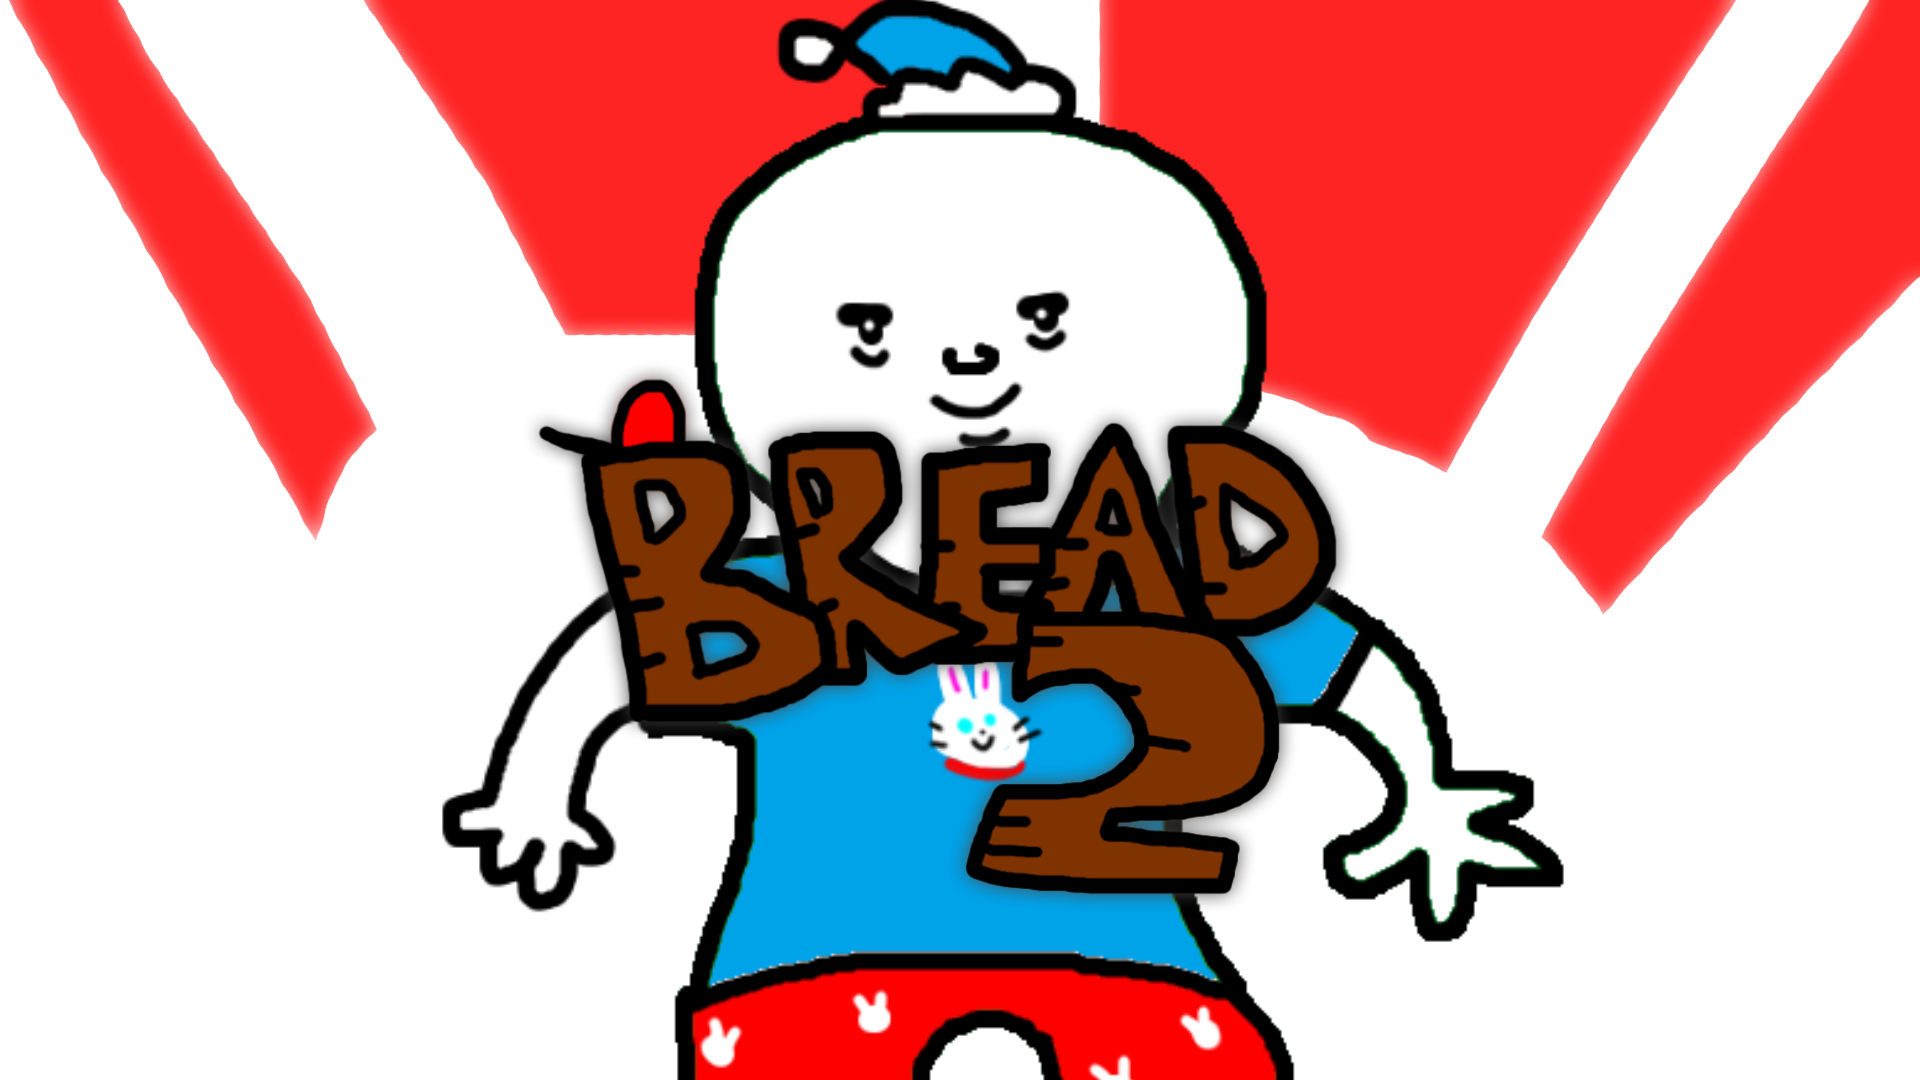 BREAD 2 - An Open World First-Person Adventure Game